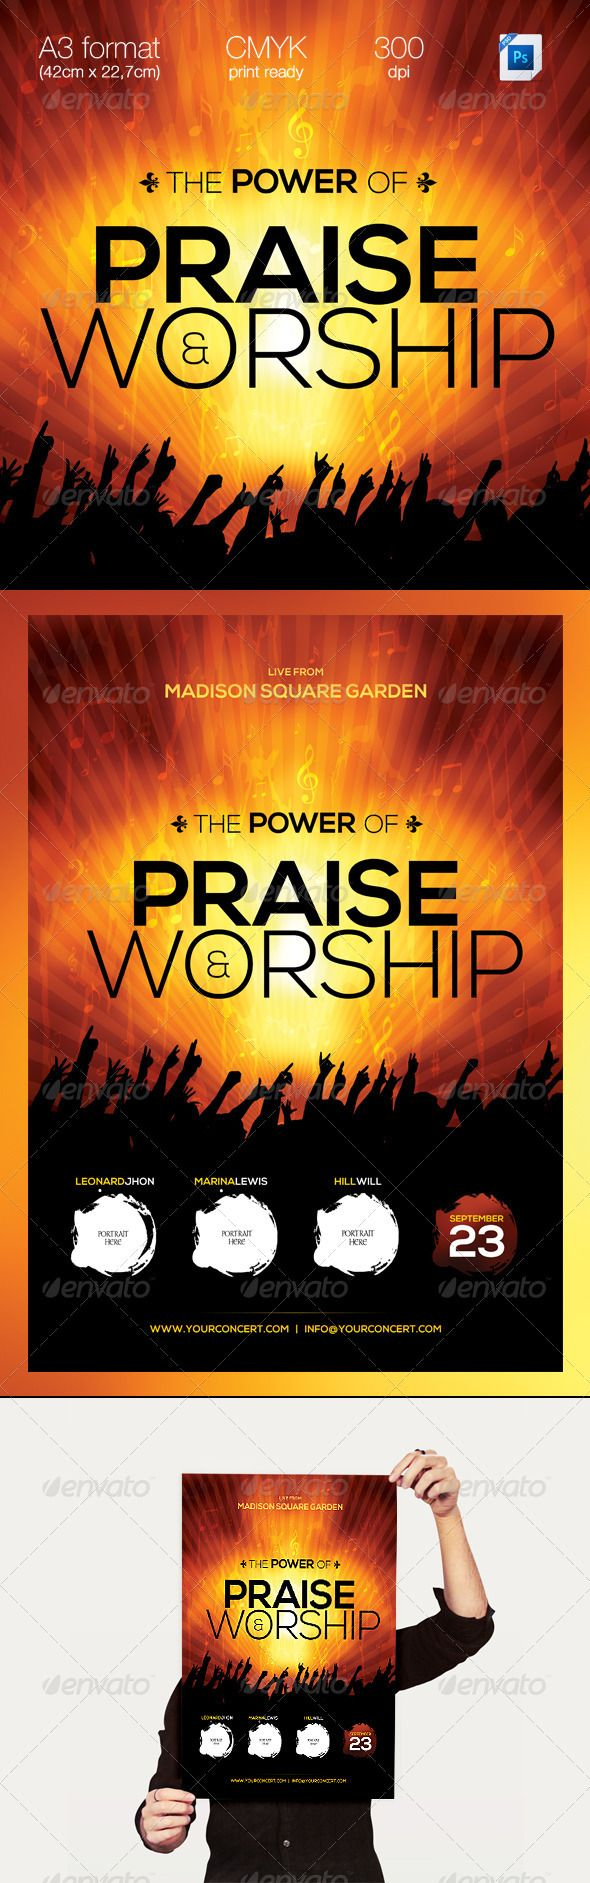 the power of praise worship a template warm flyer template the power of praise amp worship a professional clean modern amp elegant flyer template perfect for concerts